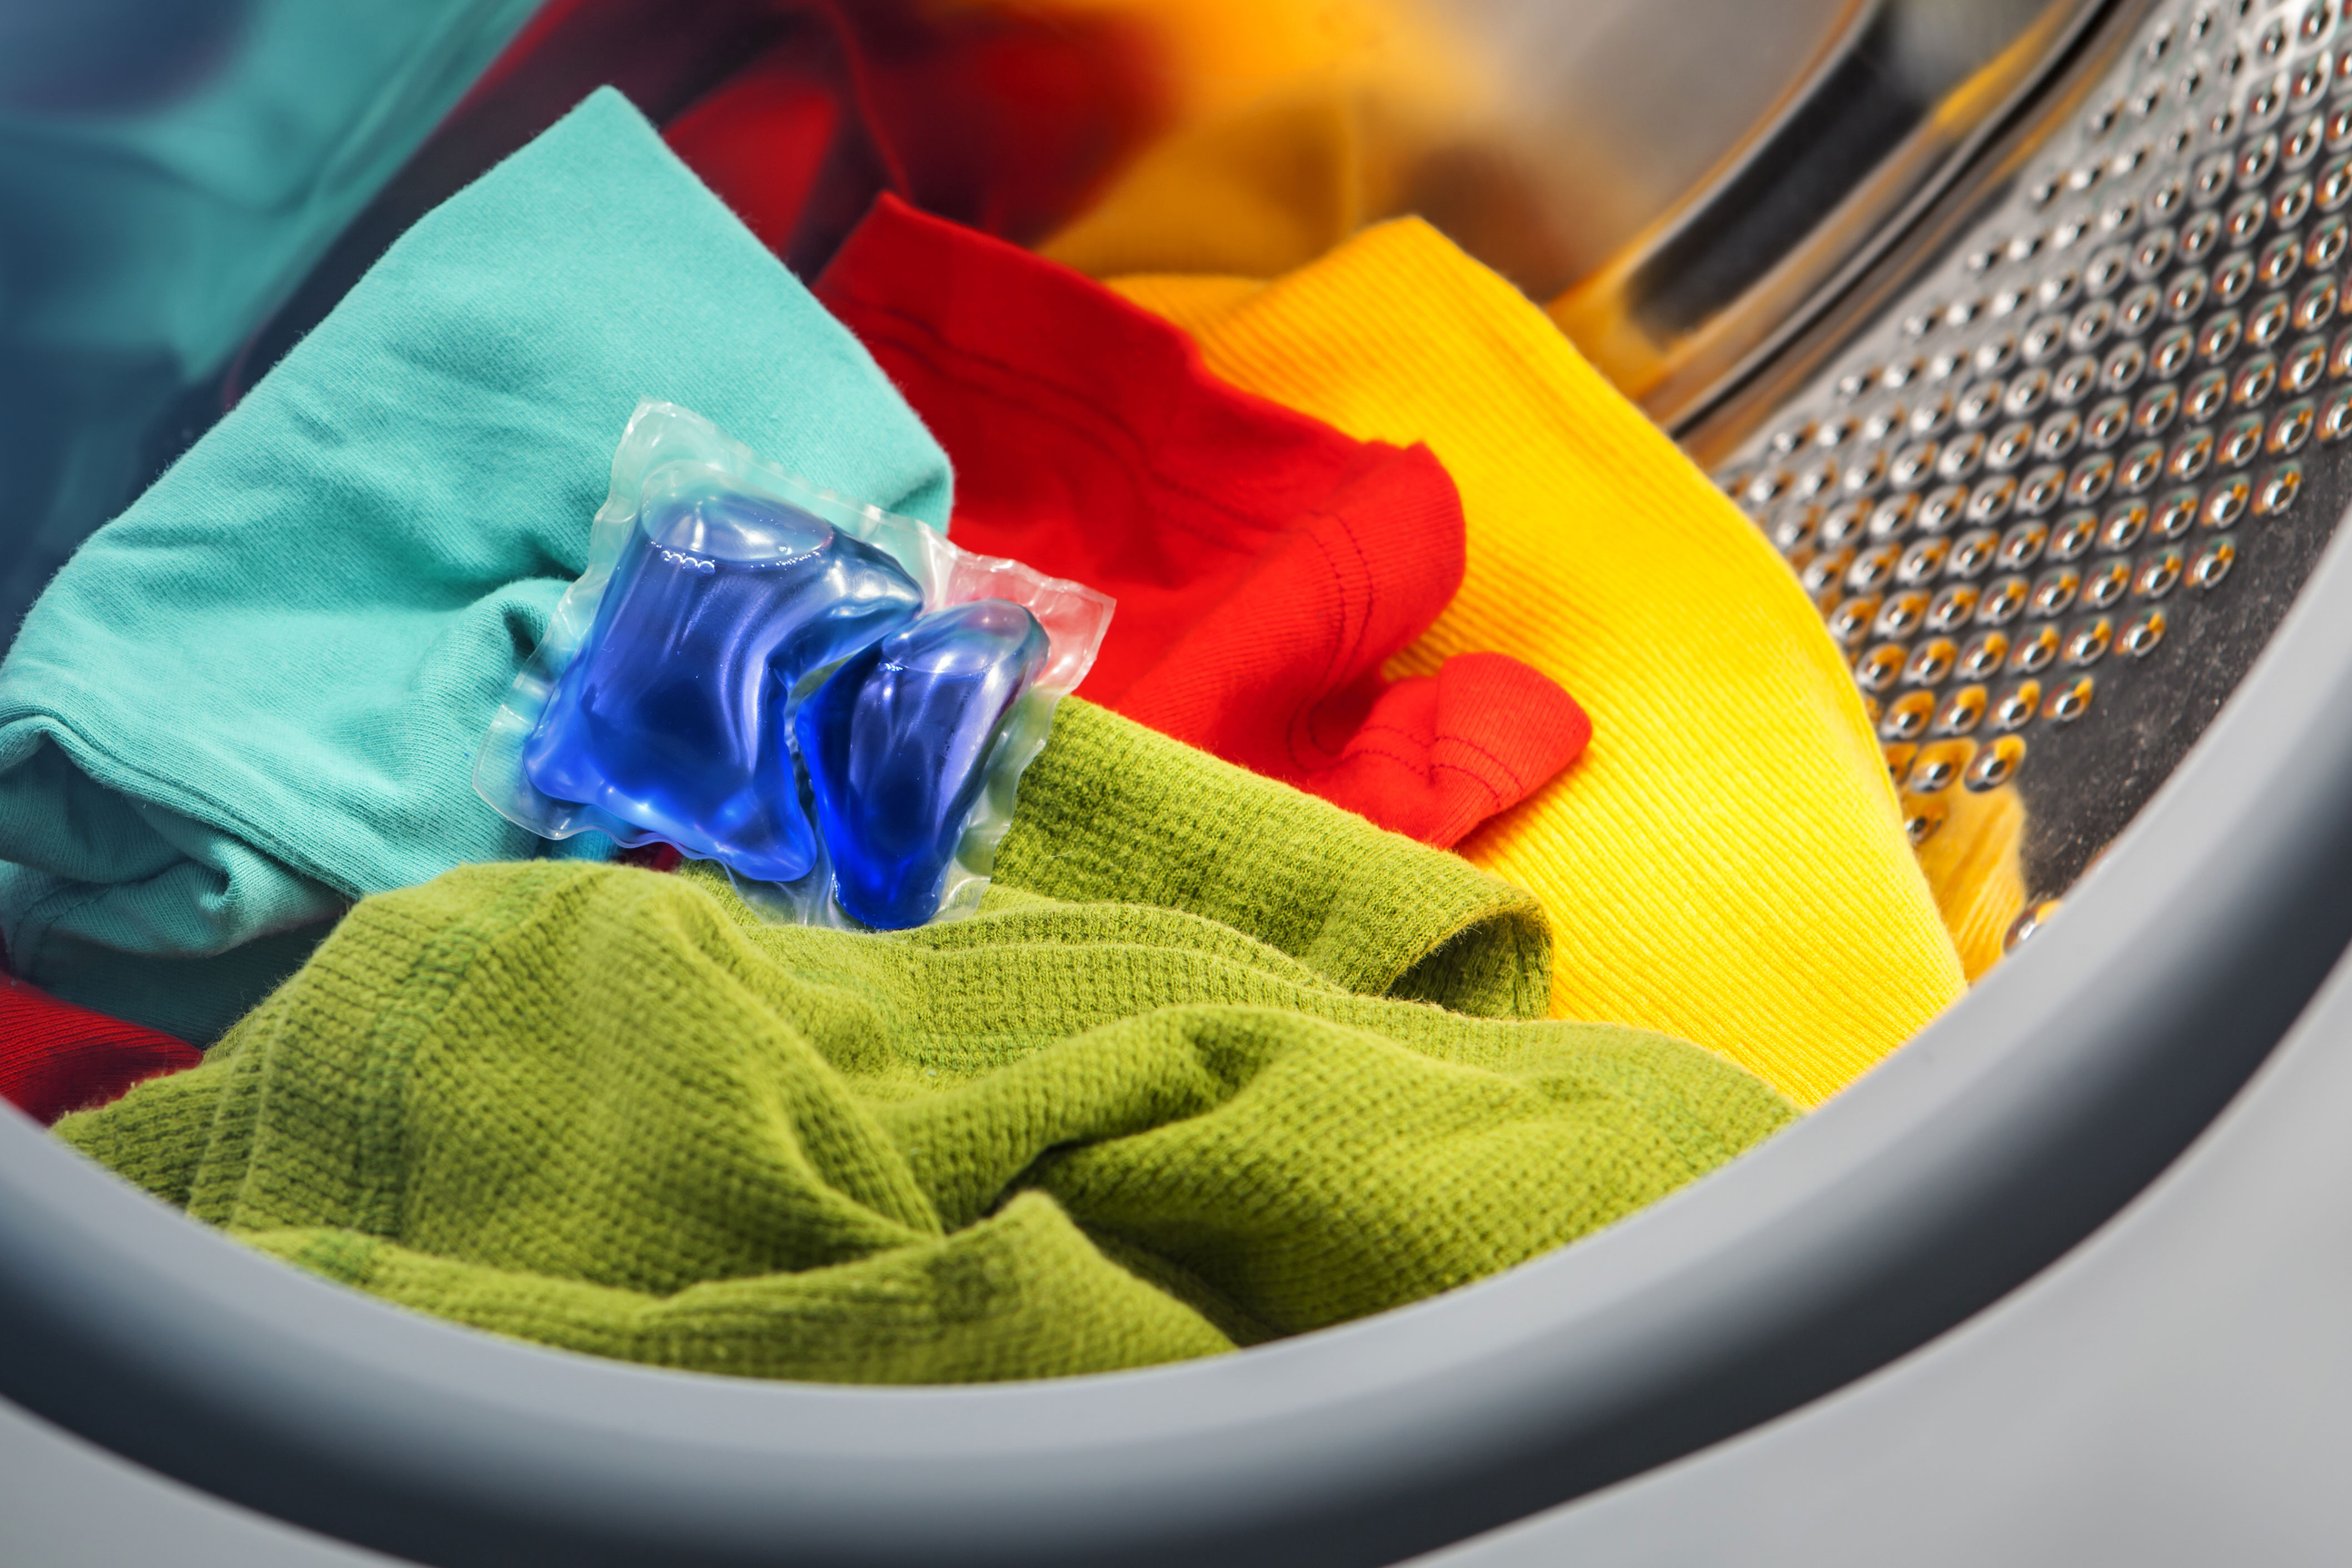 Unilever invests in plastic-free laundry tablet | Resource